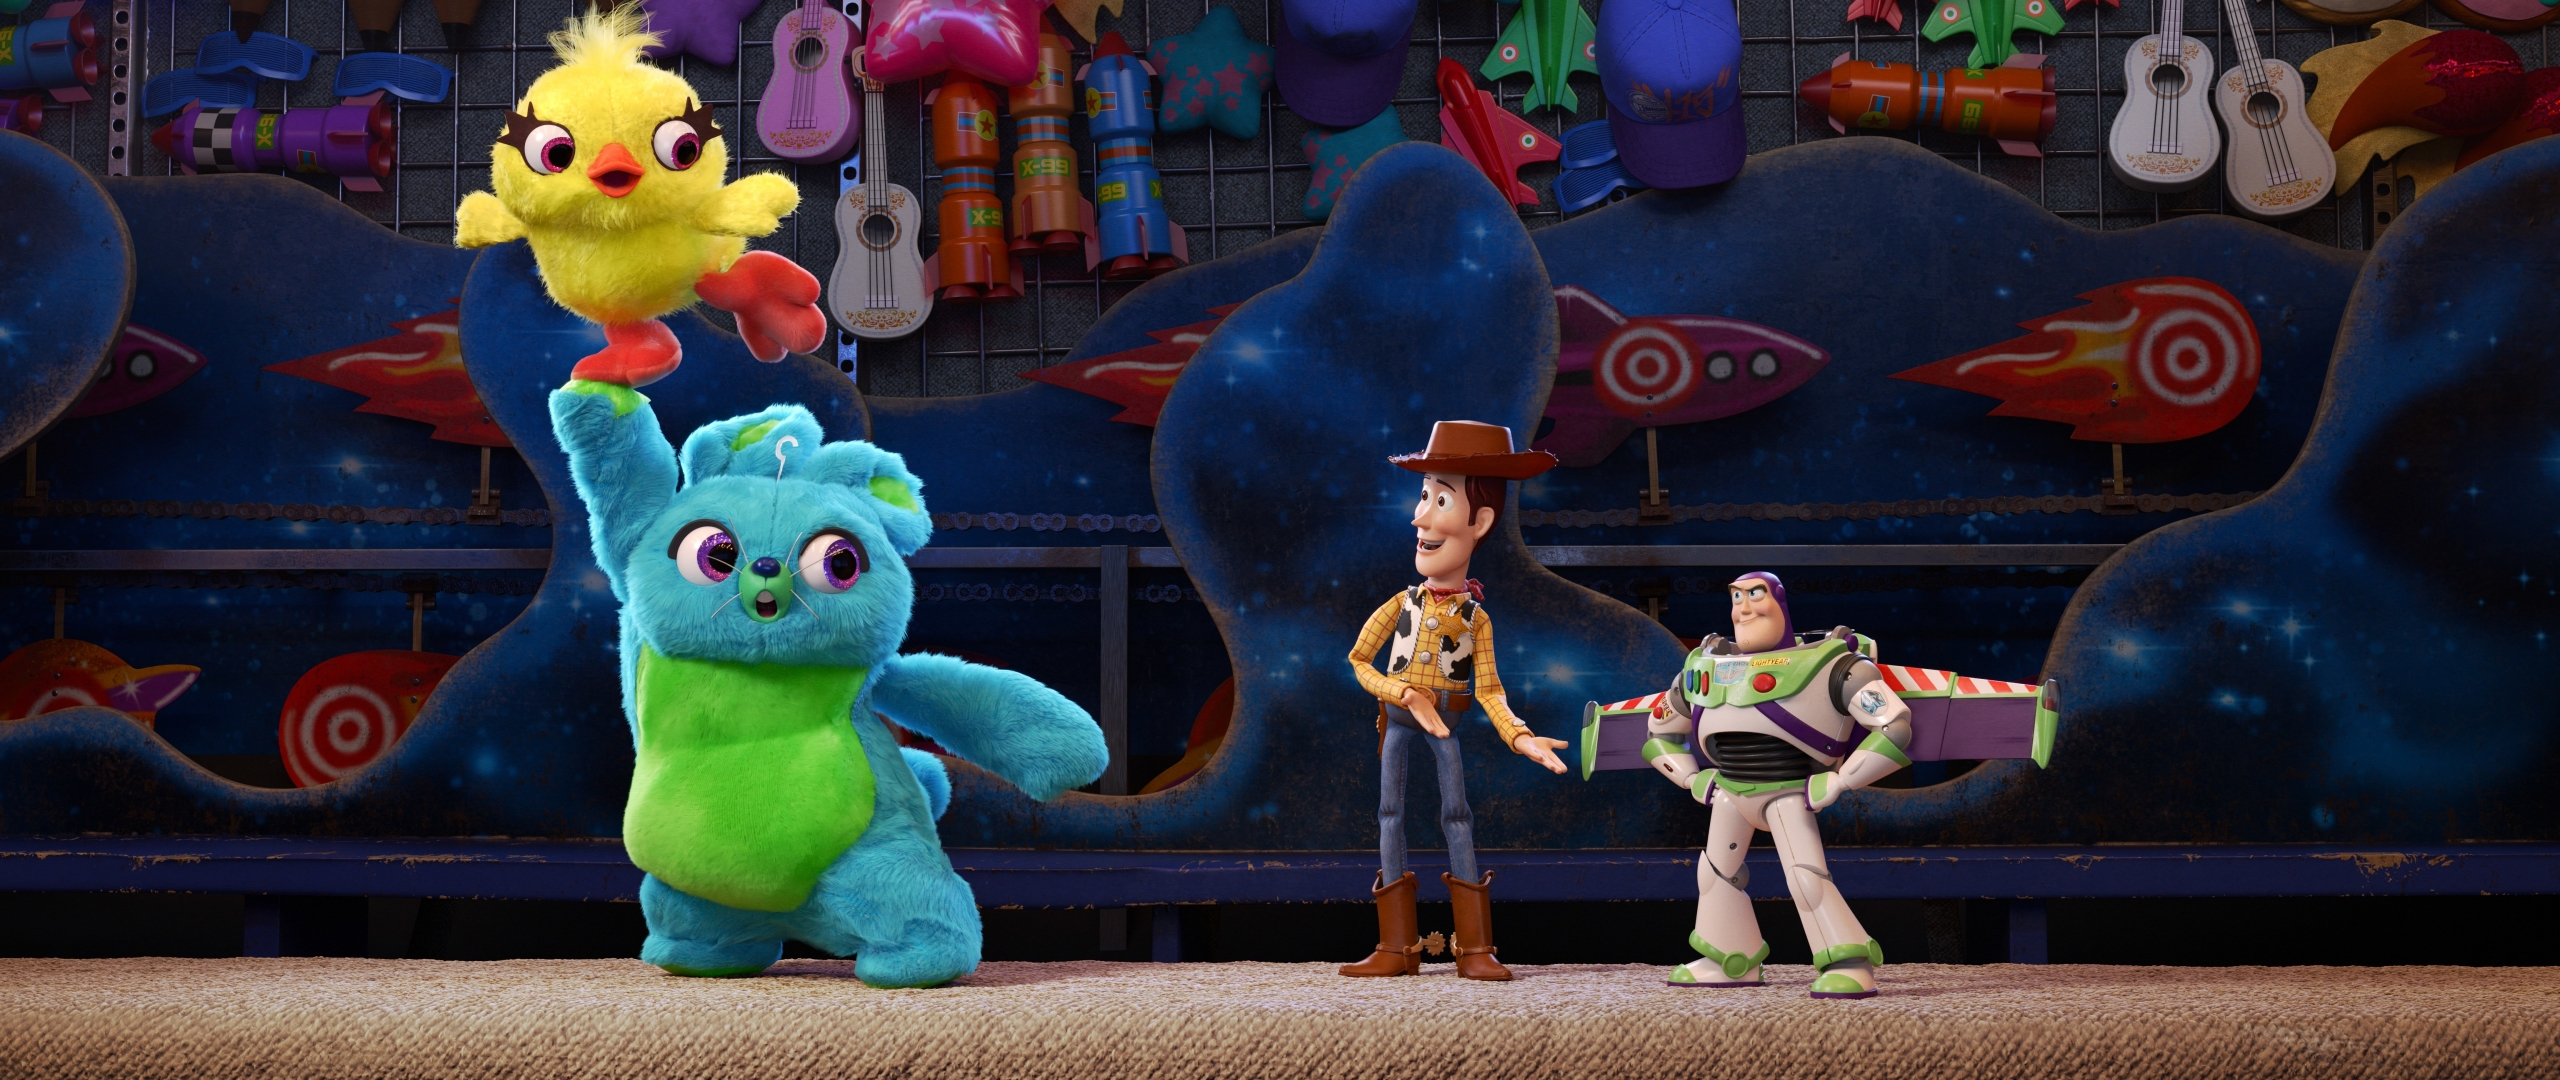 2560x1080 2019 Toy Story 4 2560x1080 Resolution Image Hd